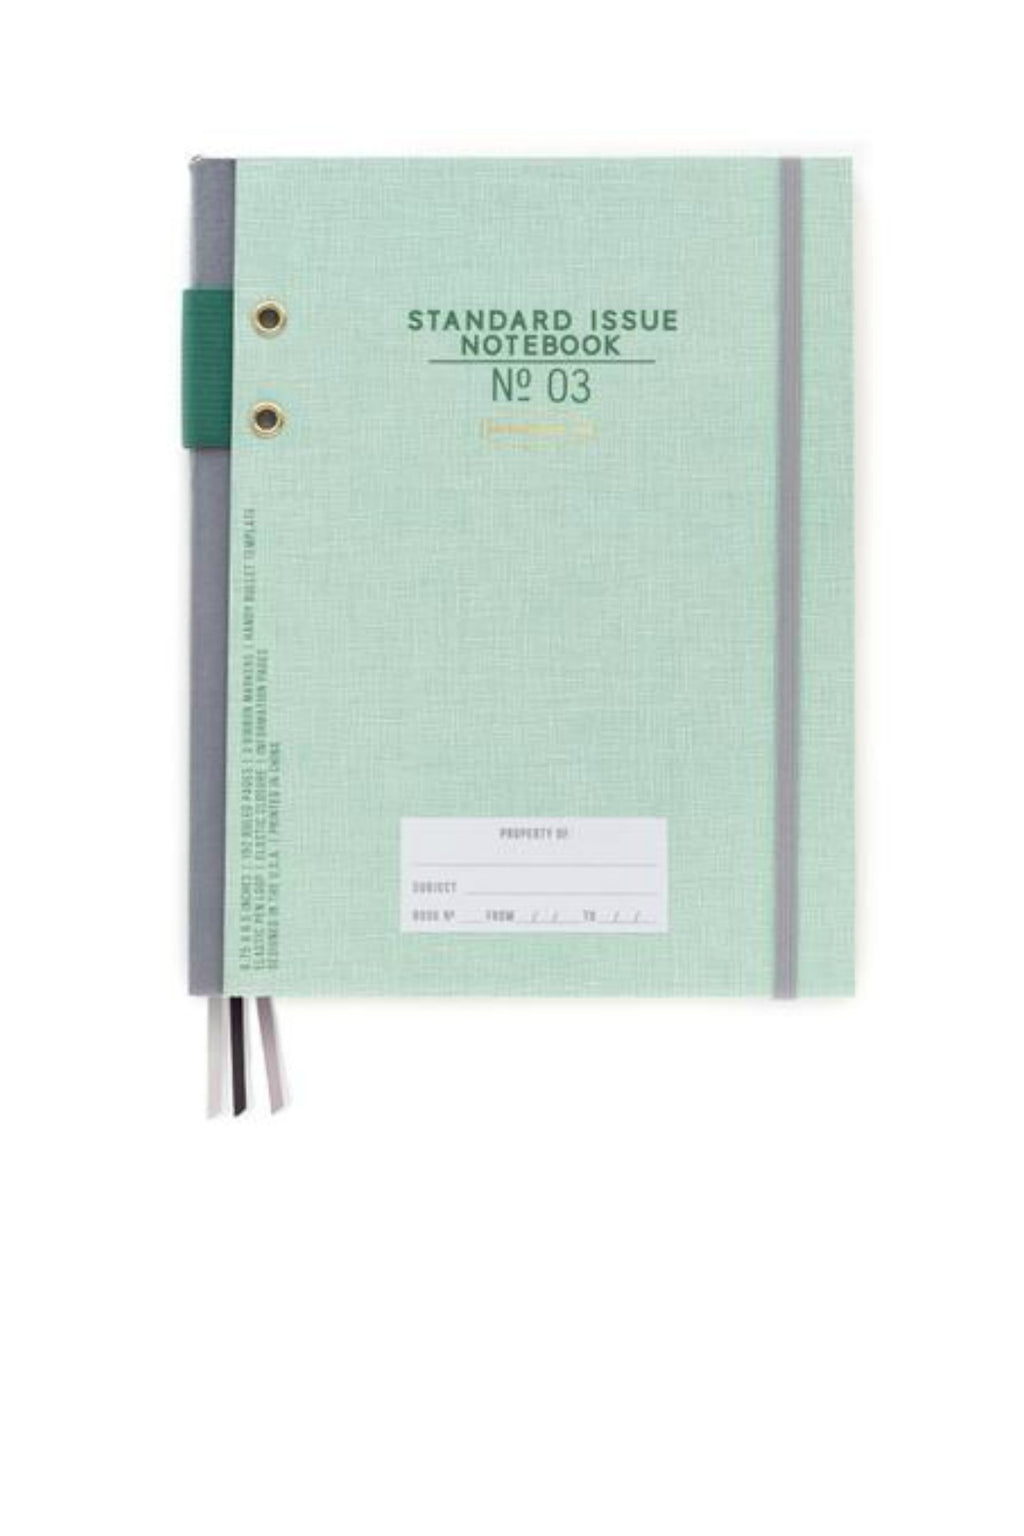 Designworks Ink Hardcover Fabric Spine Notebook in Green